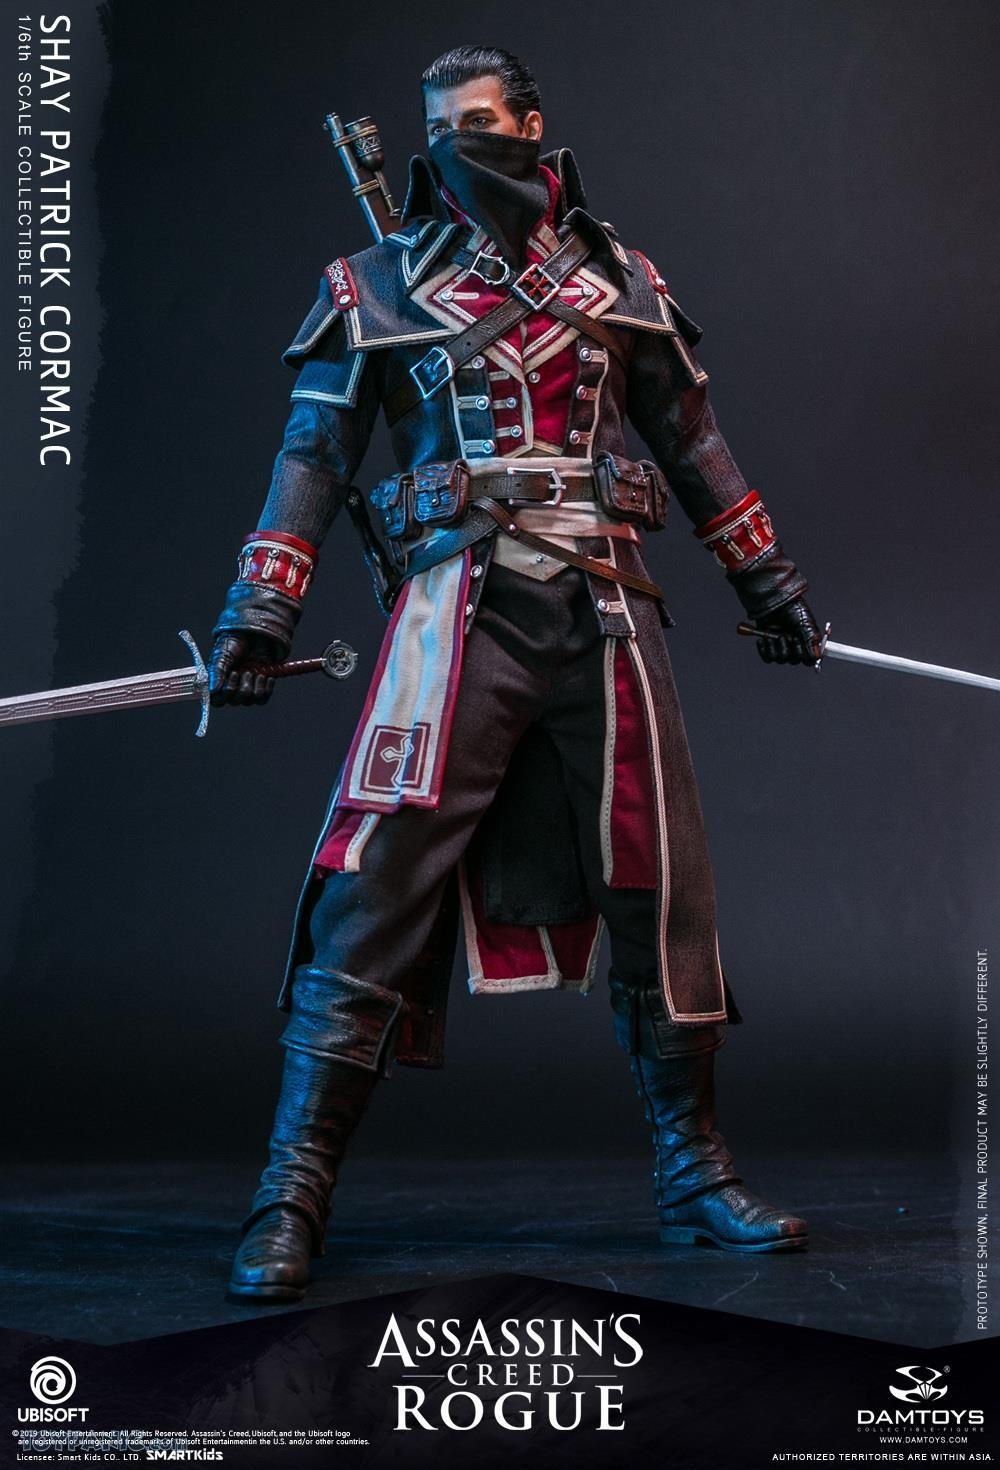 male - NEW PRODUCT: DAMTOYS: Assassins Creed Rogue - 1/6th scale Shay Patrick Cormac Collectible Figure 82220114